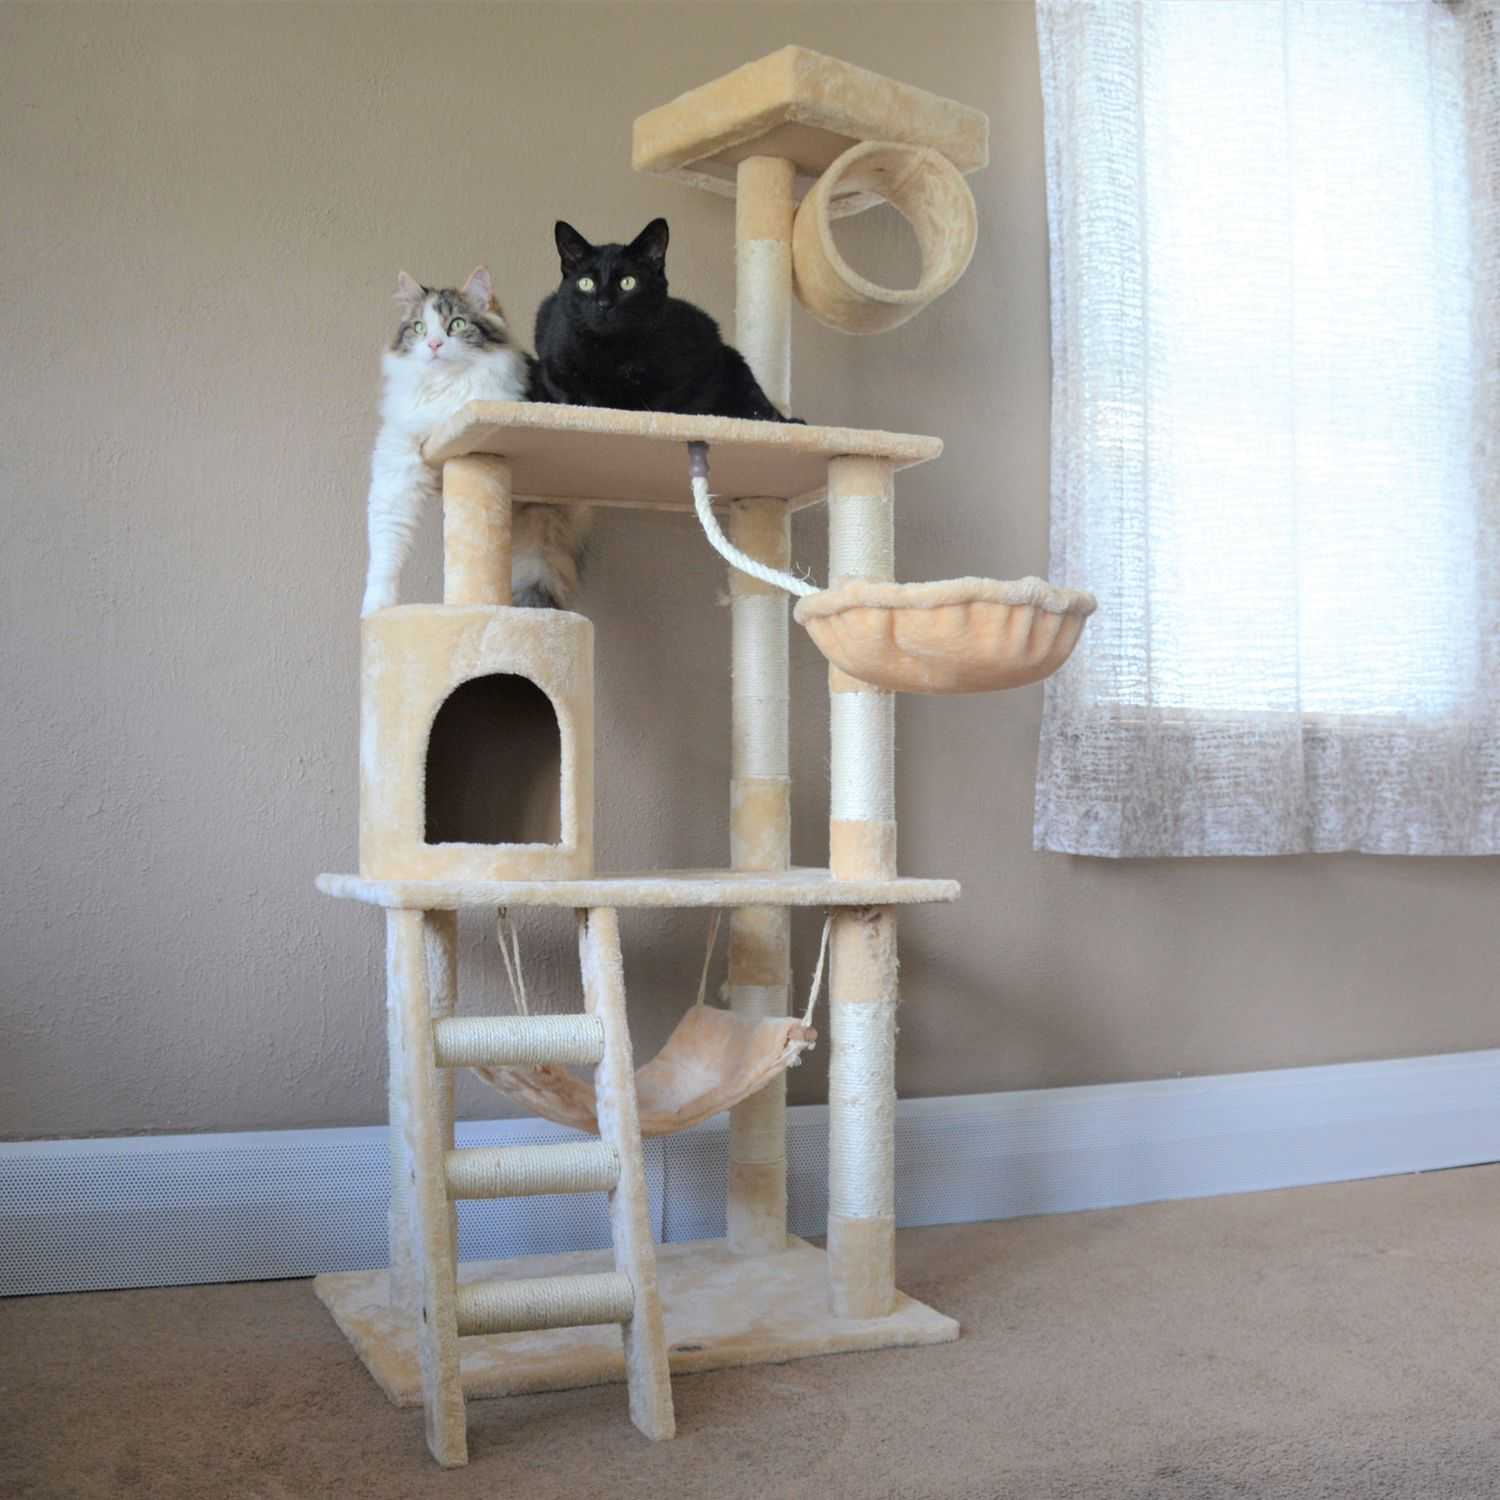 Go Pet Club Cat Tree Review Affordable And Cat Approved